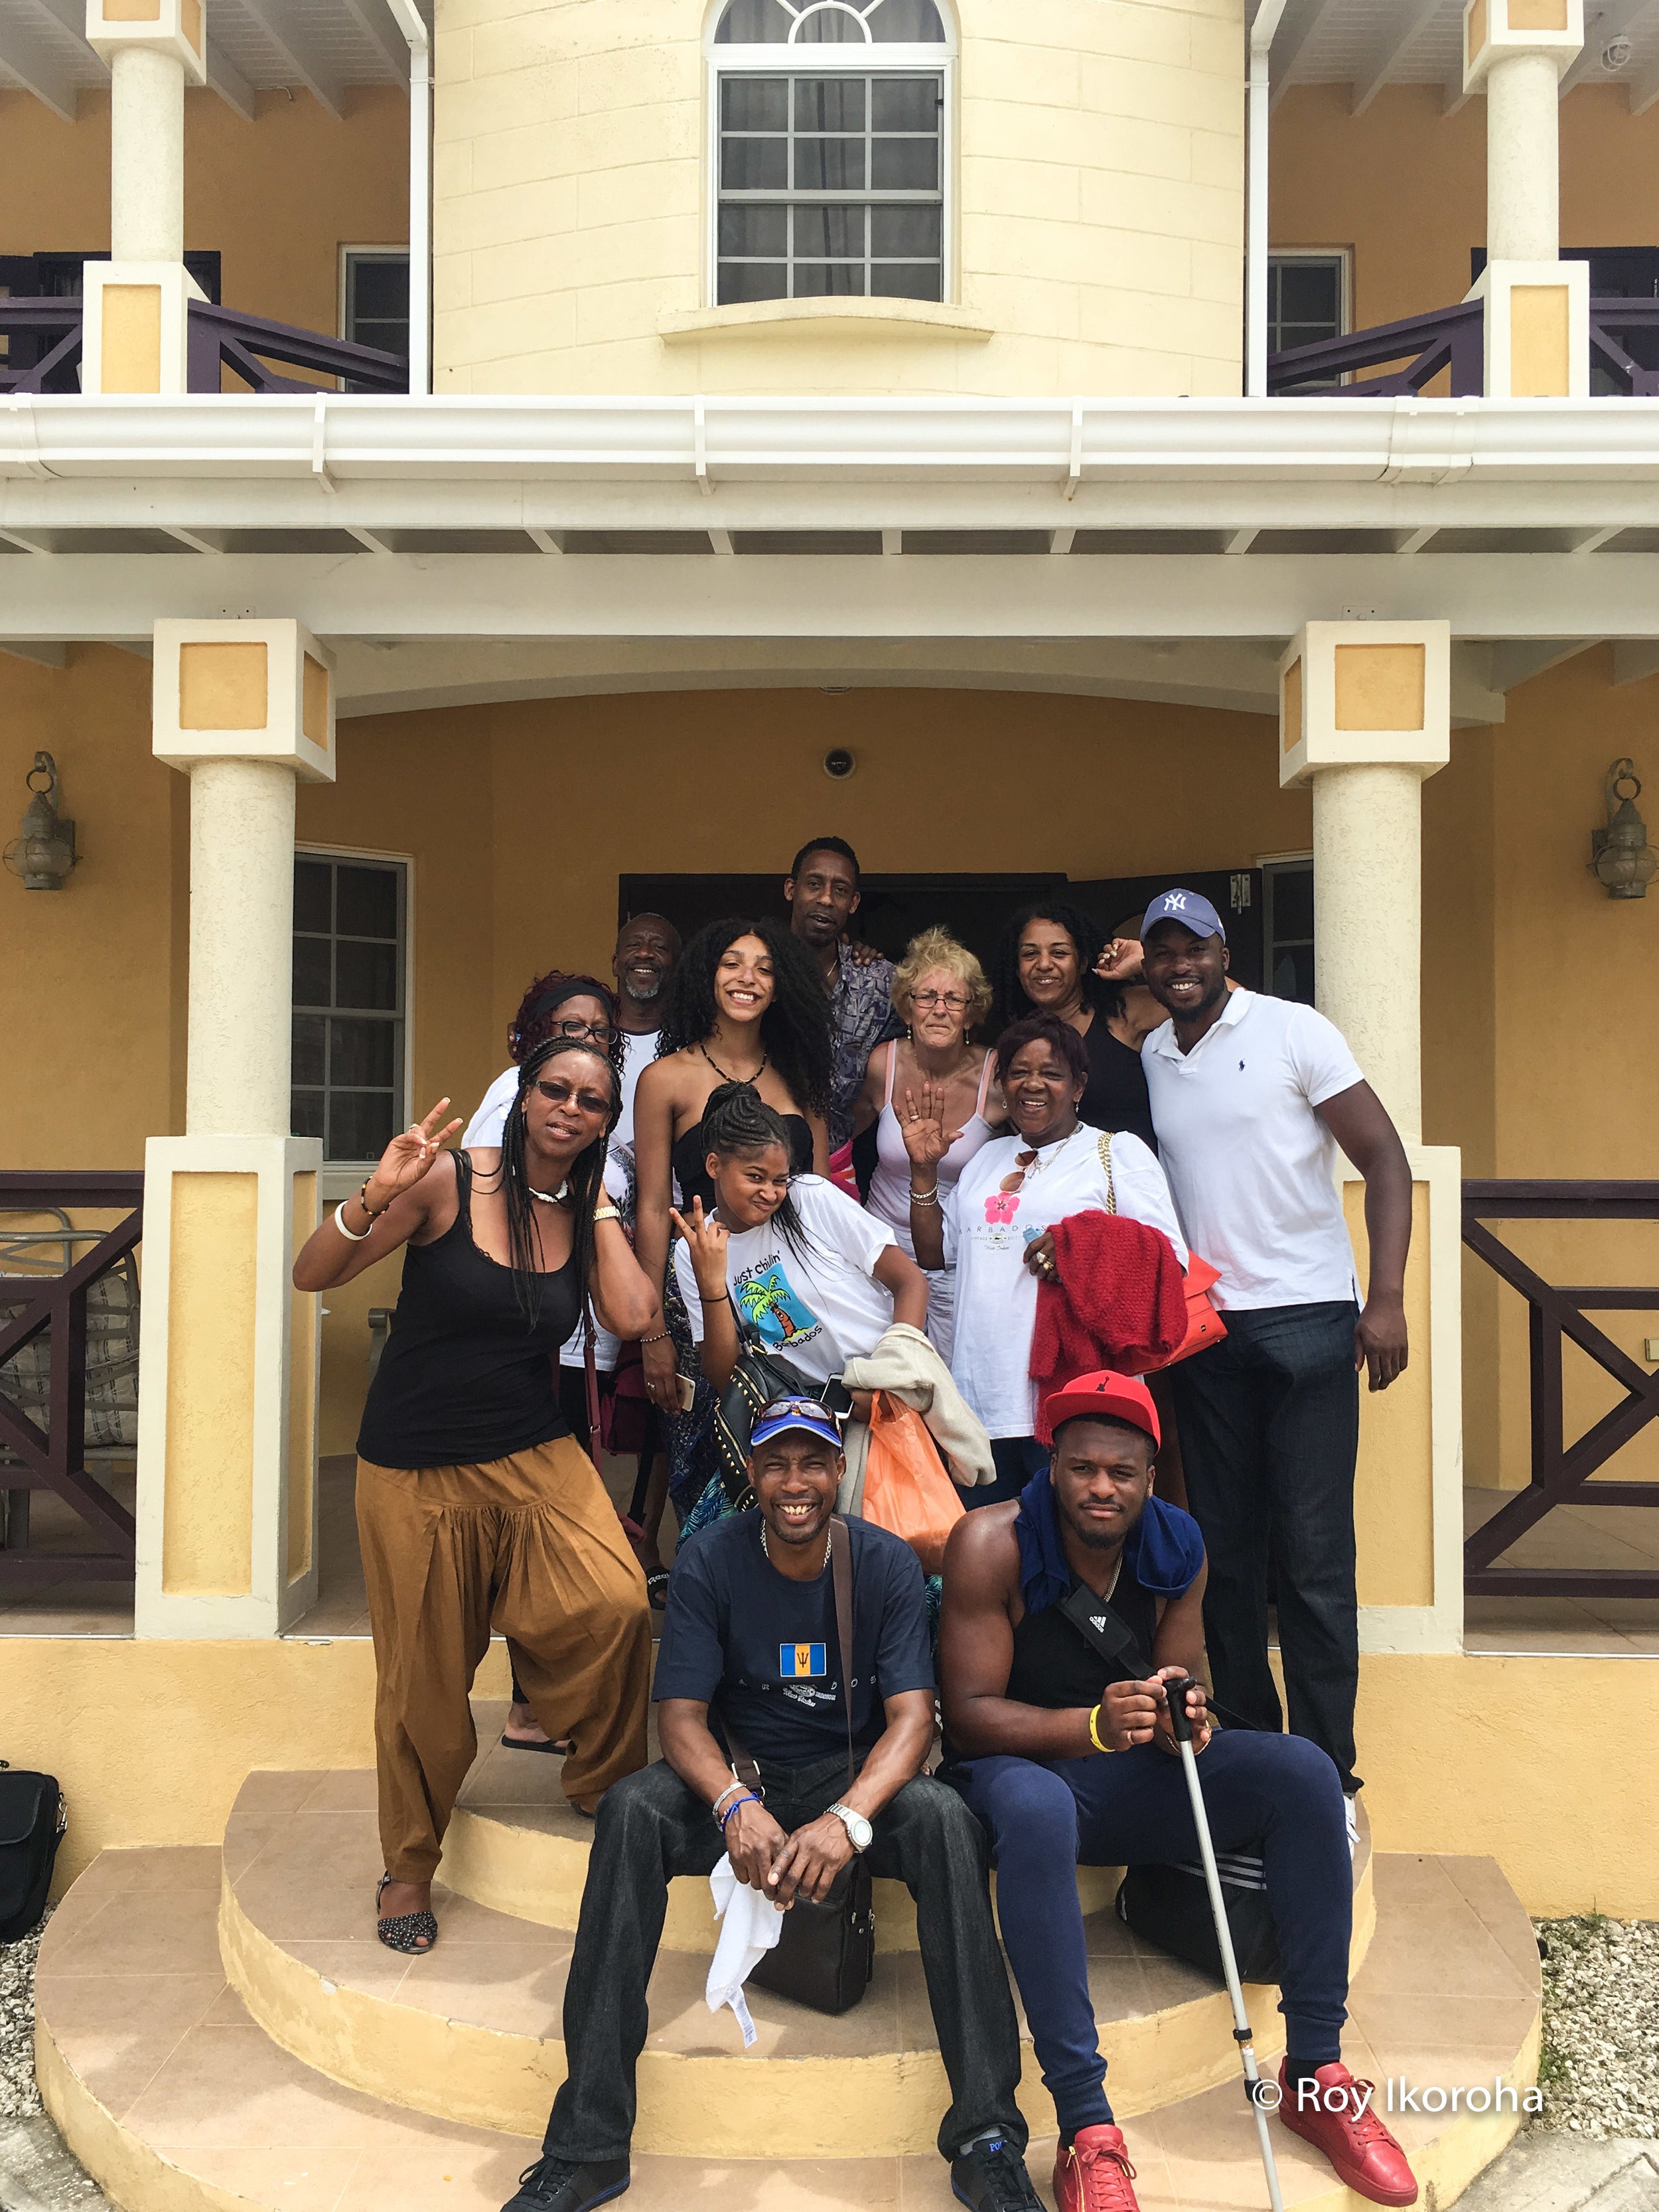 The family outside our villa, Barbados